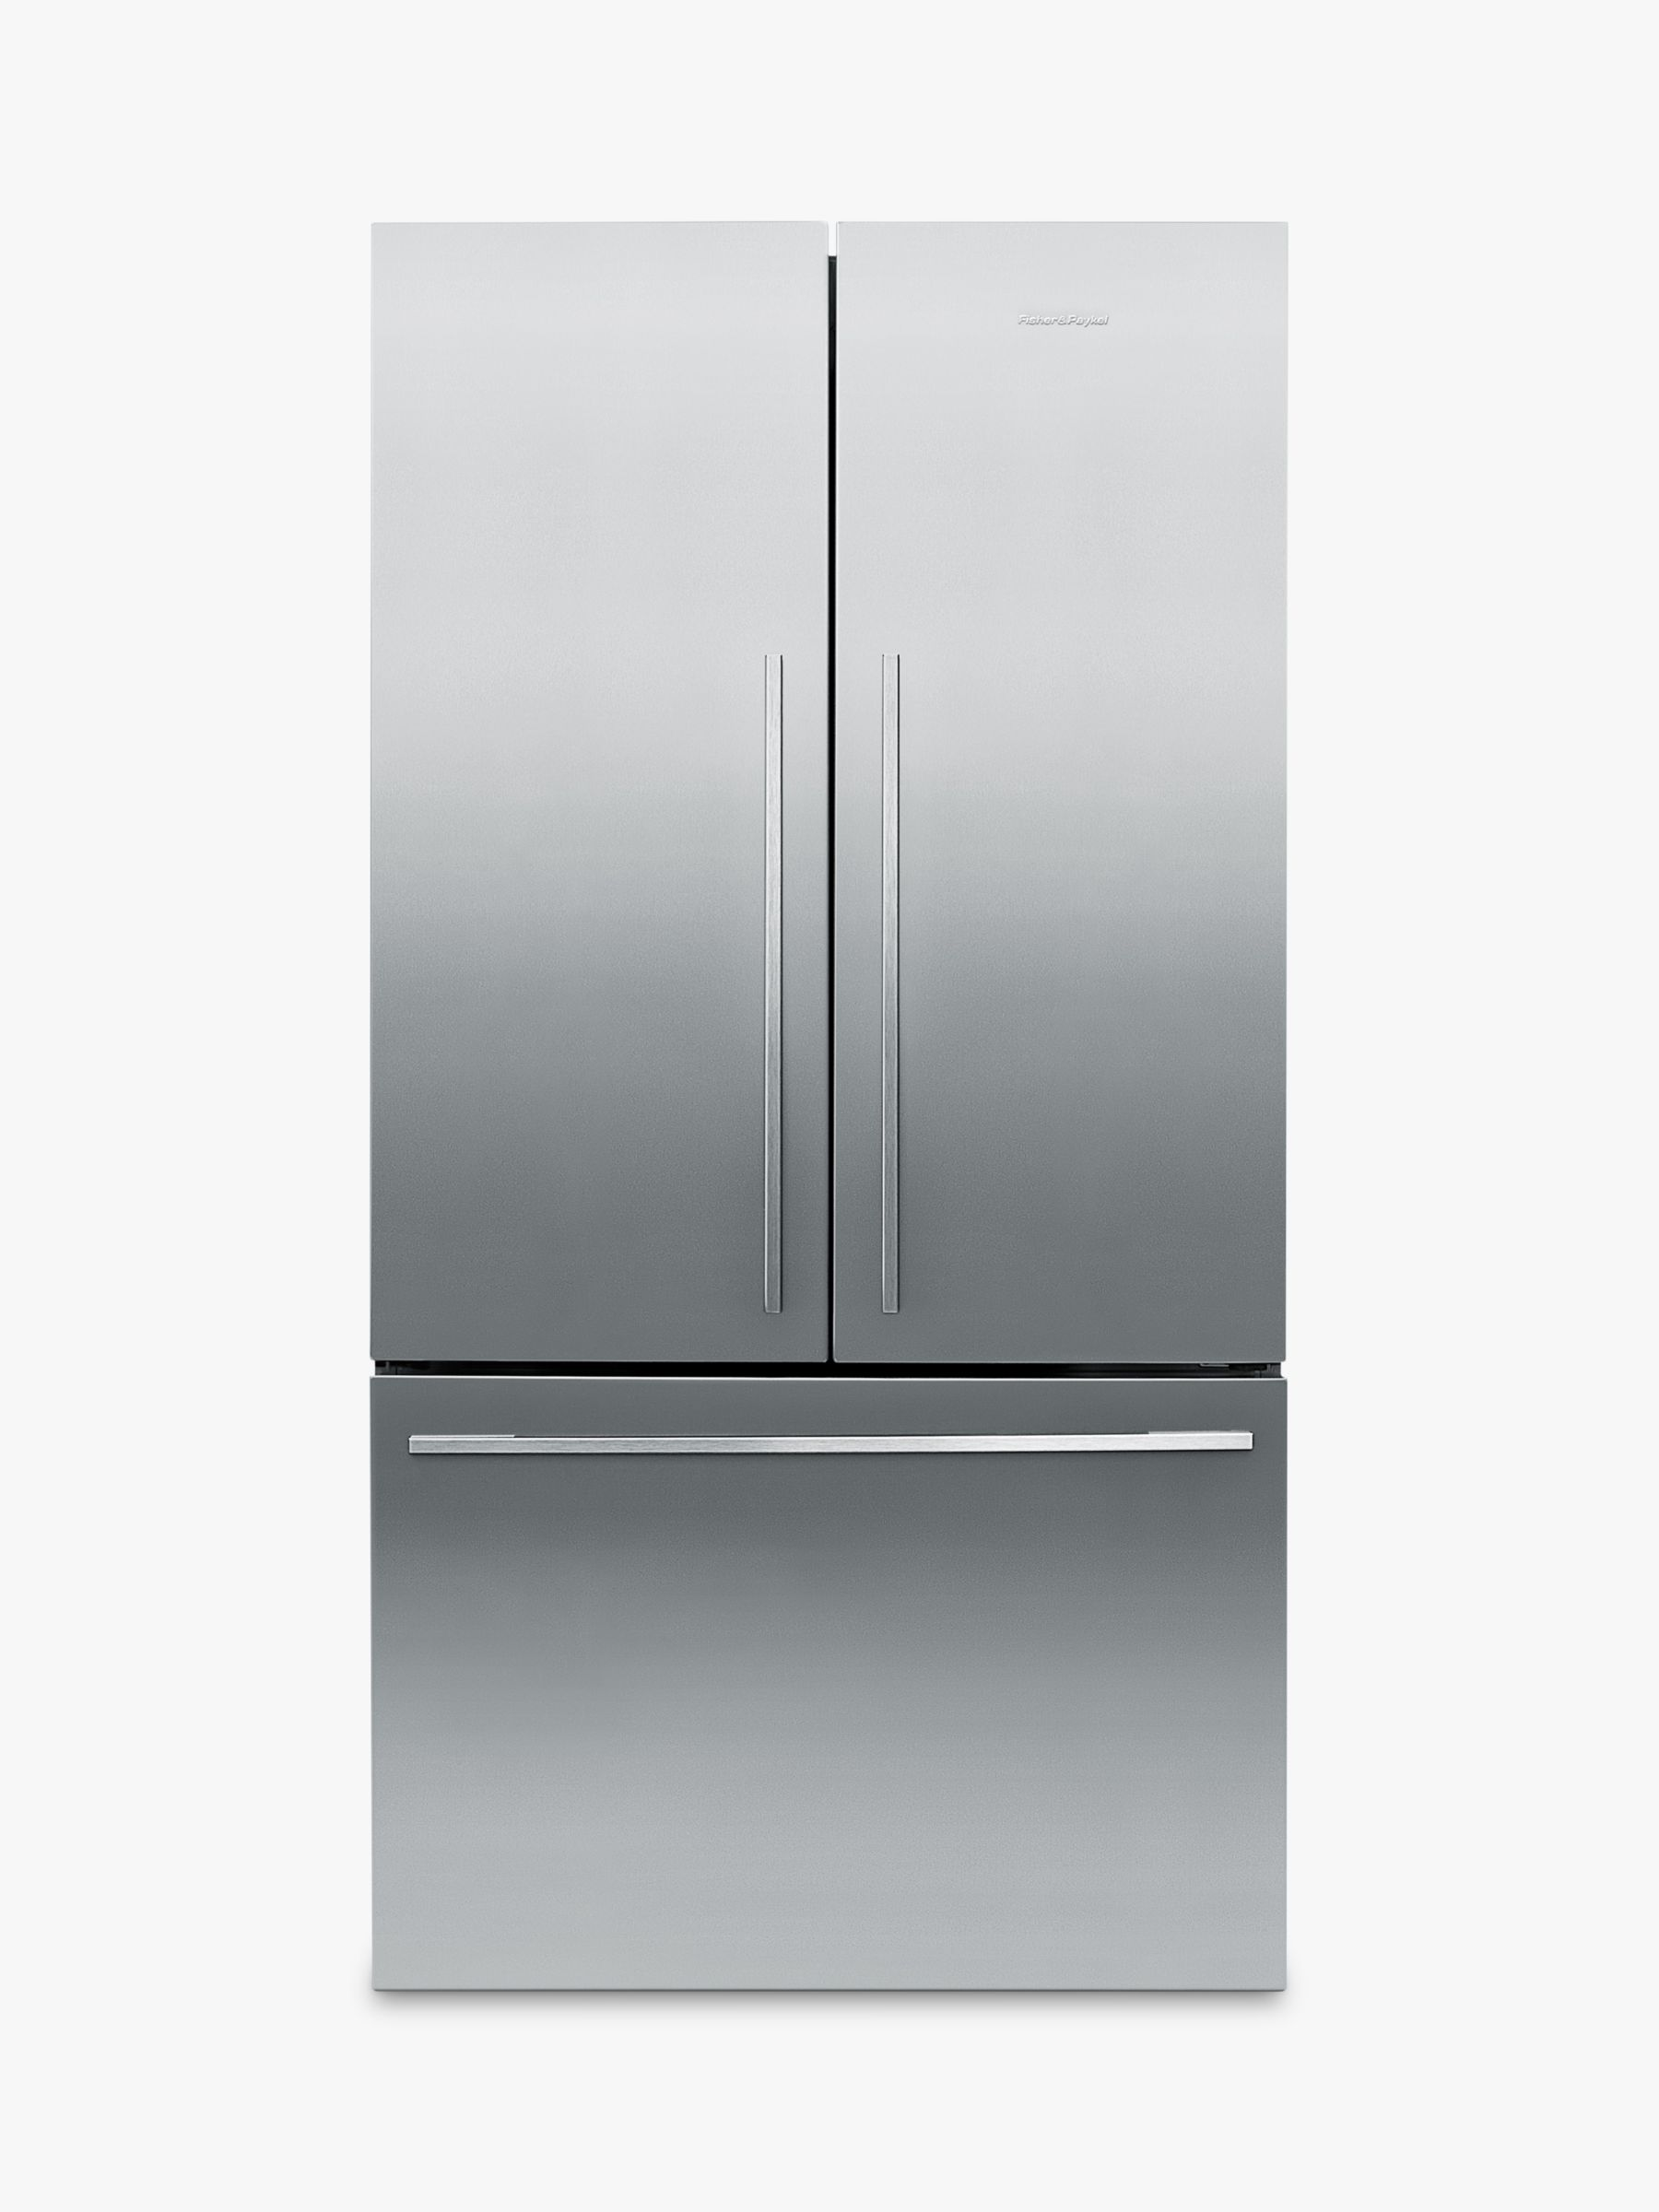 Fisher & Paykel Fisher & Paykel RF522ADX4 Fridge Freezer, A+ Energy Rating, 79cm Wide, Stainless Steel